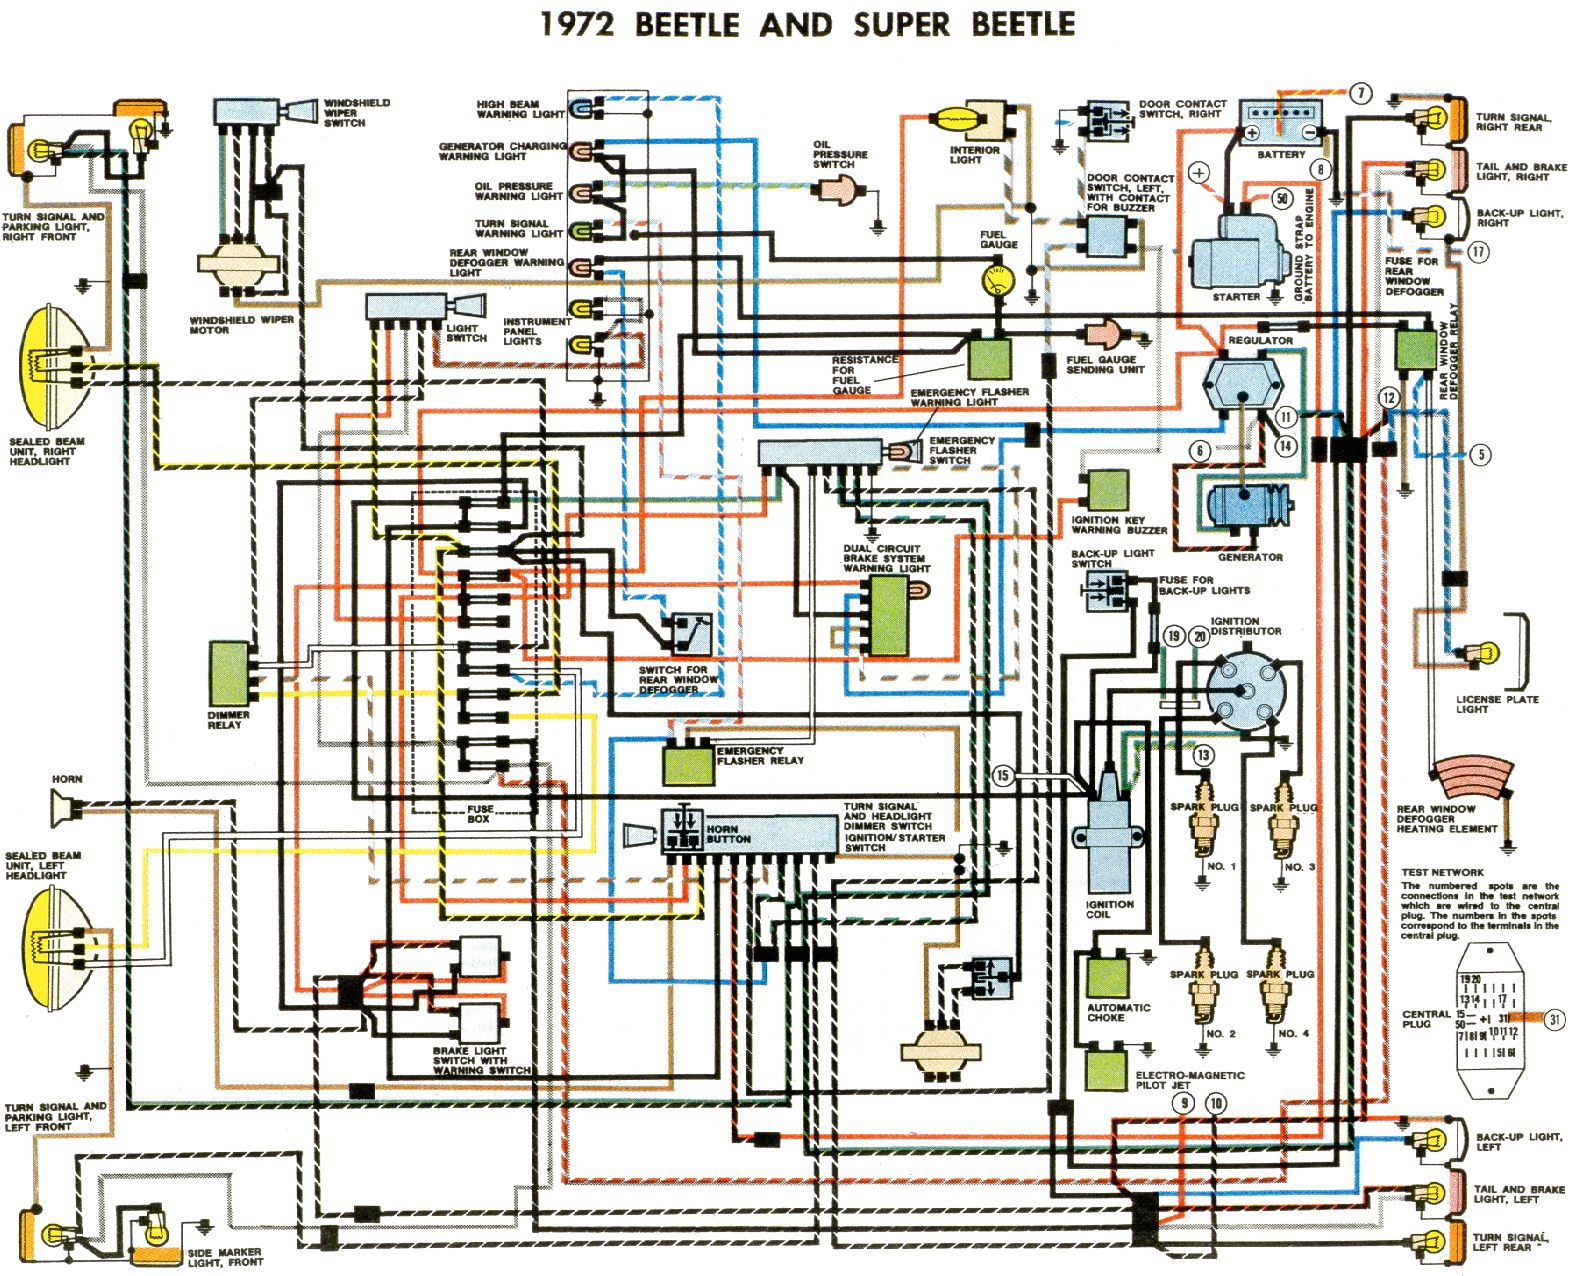 Power King 2418 Wiring Diagram Explained Diagrams 1600 Series Tractor 1614 Electrical Free Car U2022 Steering